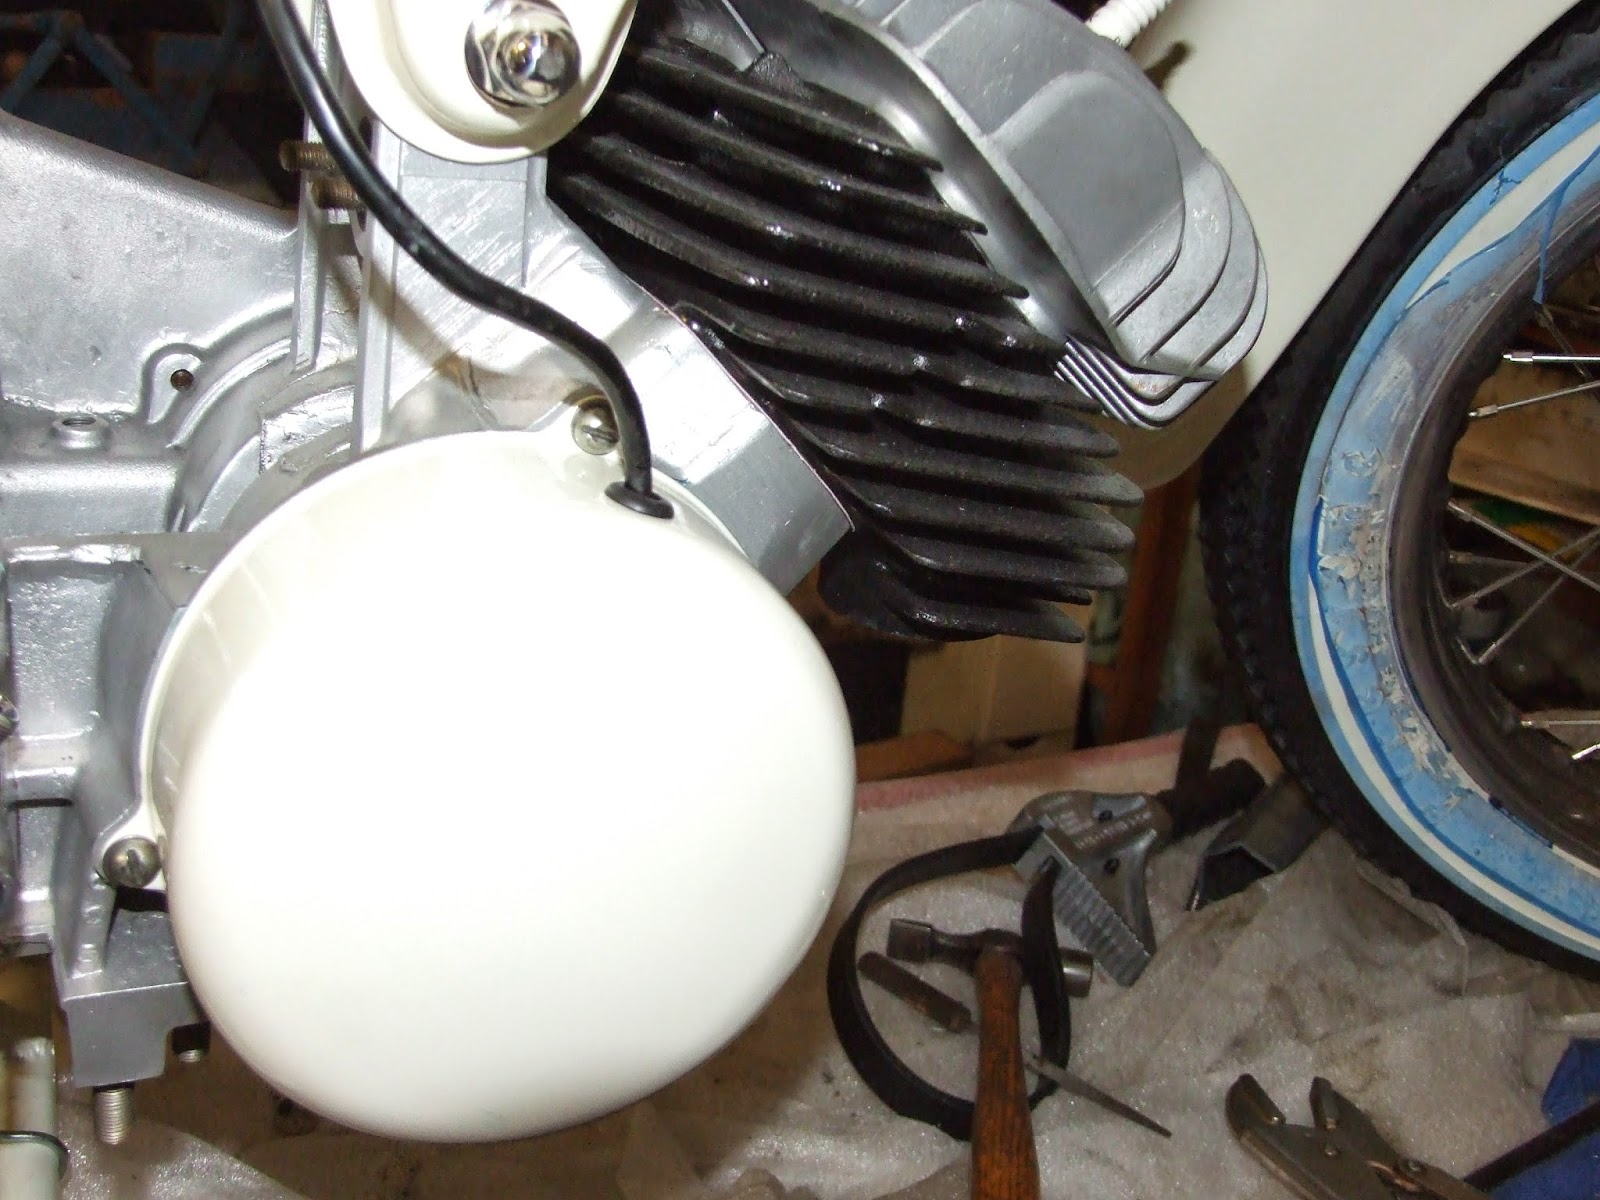 Classic Motorbikes February 2015 Wiring Diagram Grommet Key I Could Then Fit The Newly Painted Covering Cap Over Alternator And Pass Wires Through Hole In With A New To Stop It Rubbing